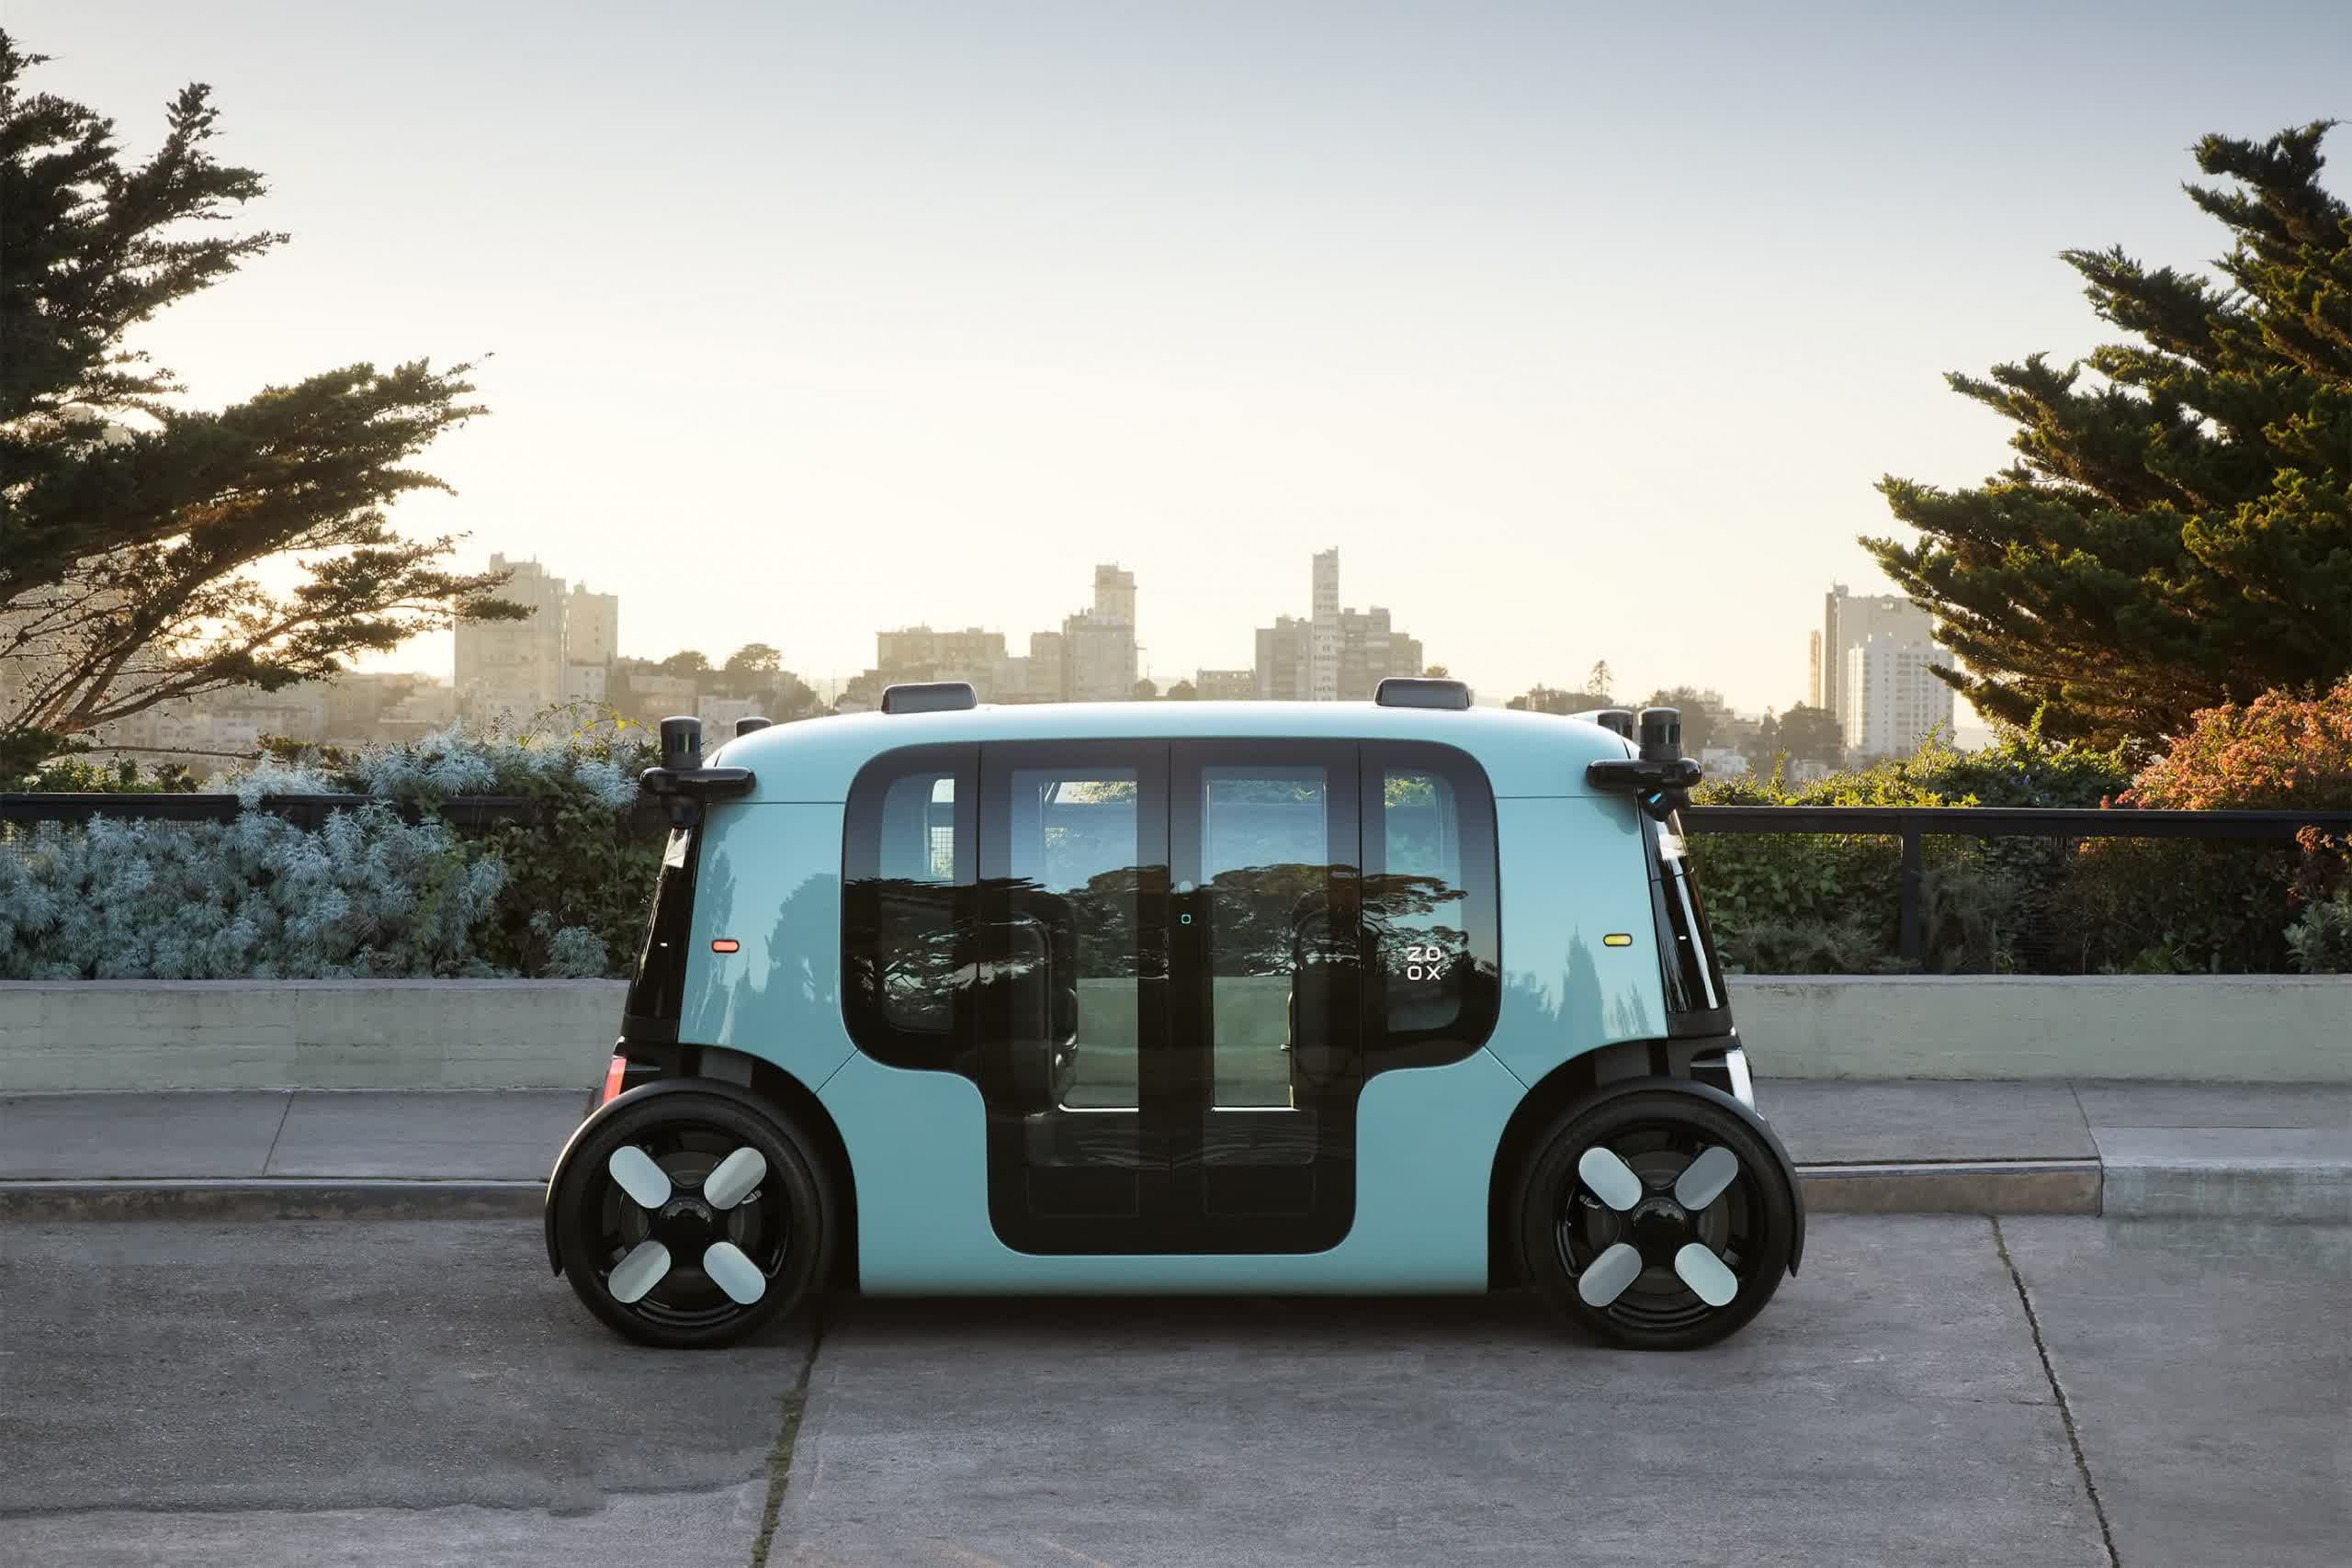 Zoox unveils its self-driving robotaxi paving the way for an Amazon ride-hailingservice